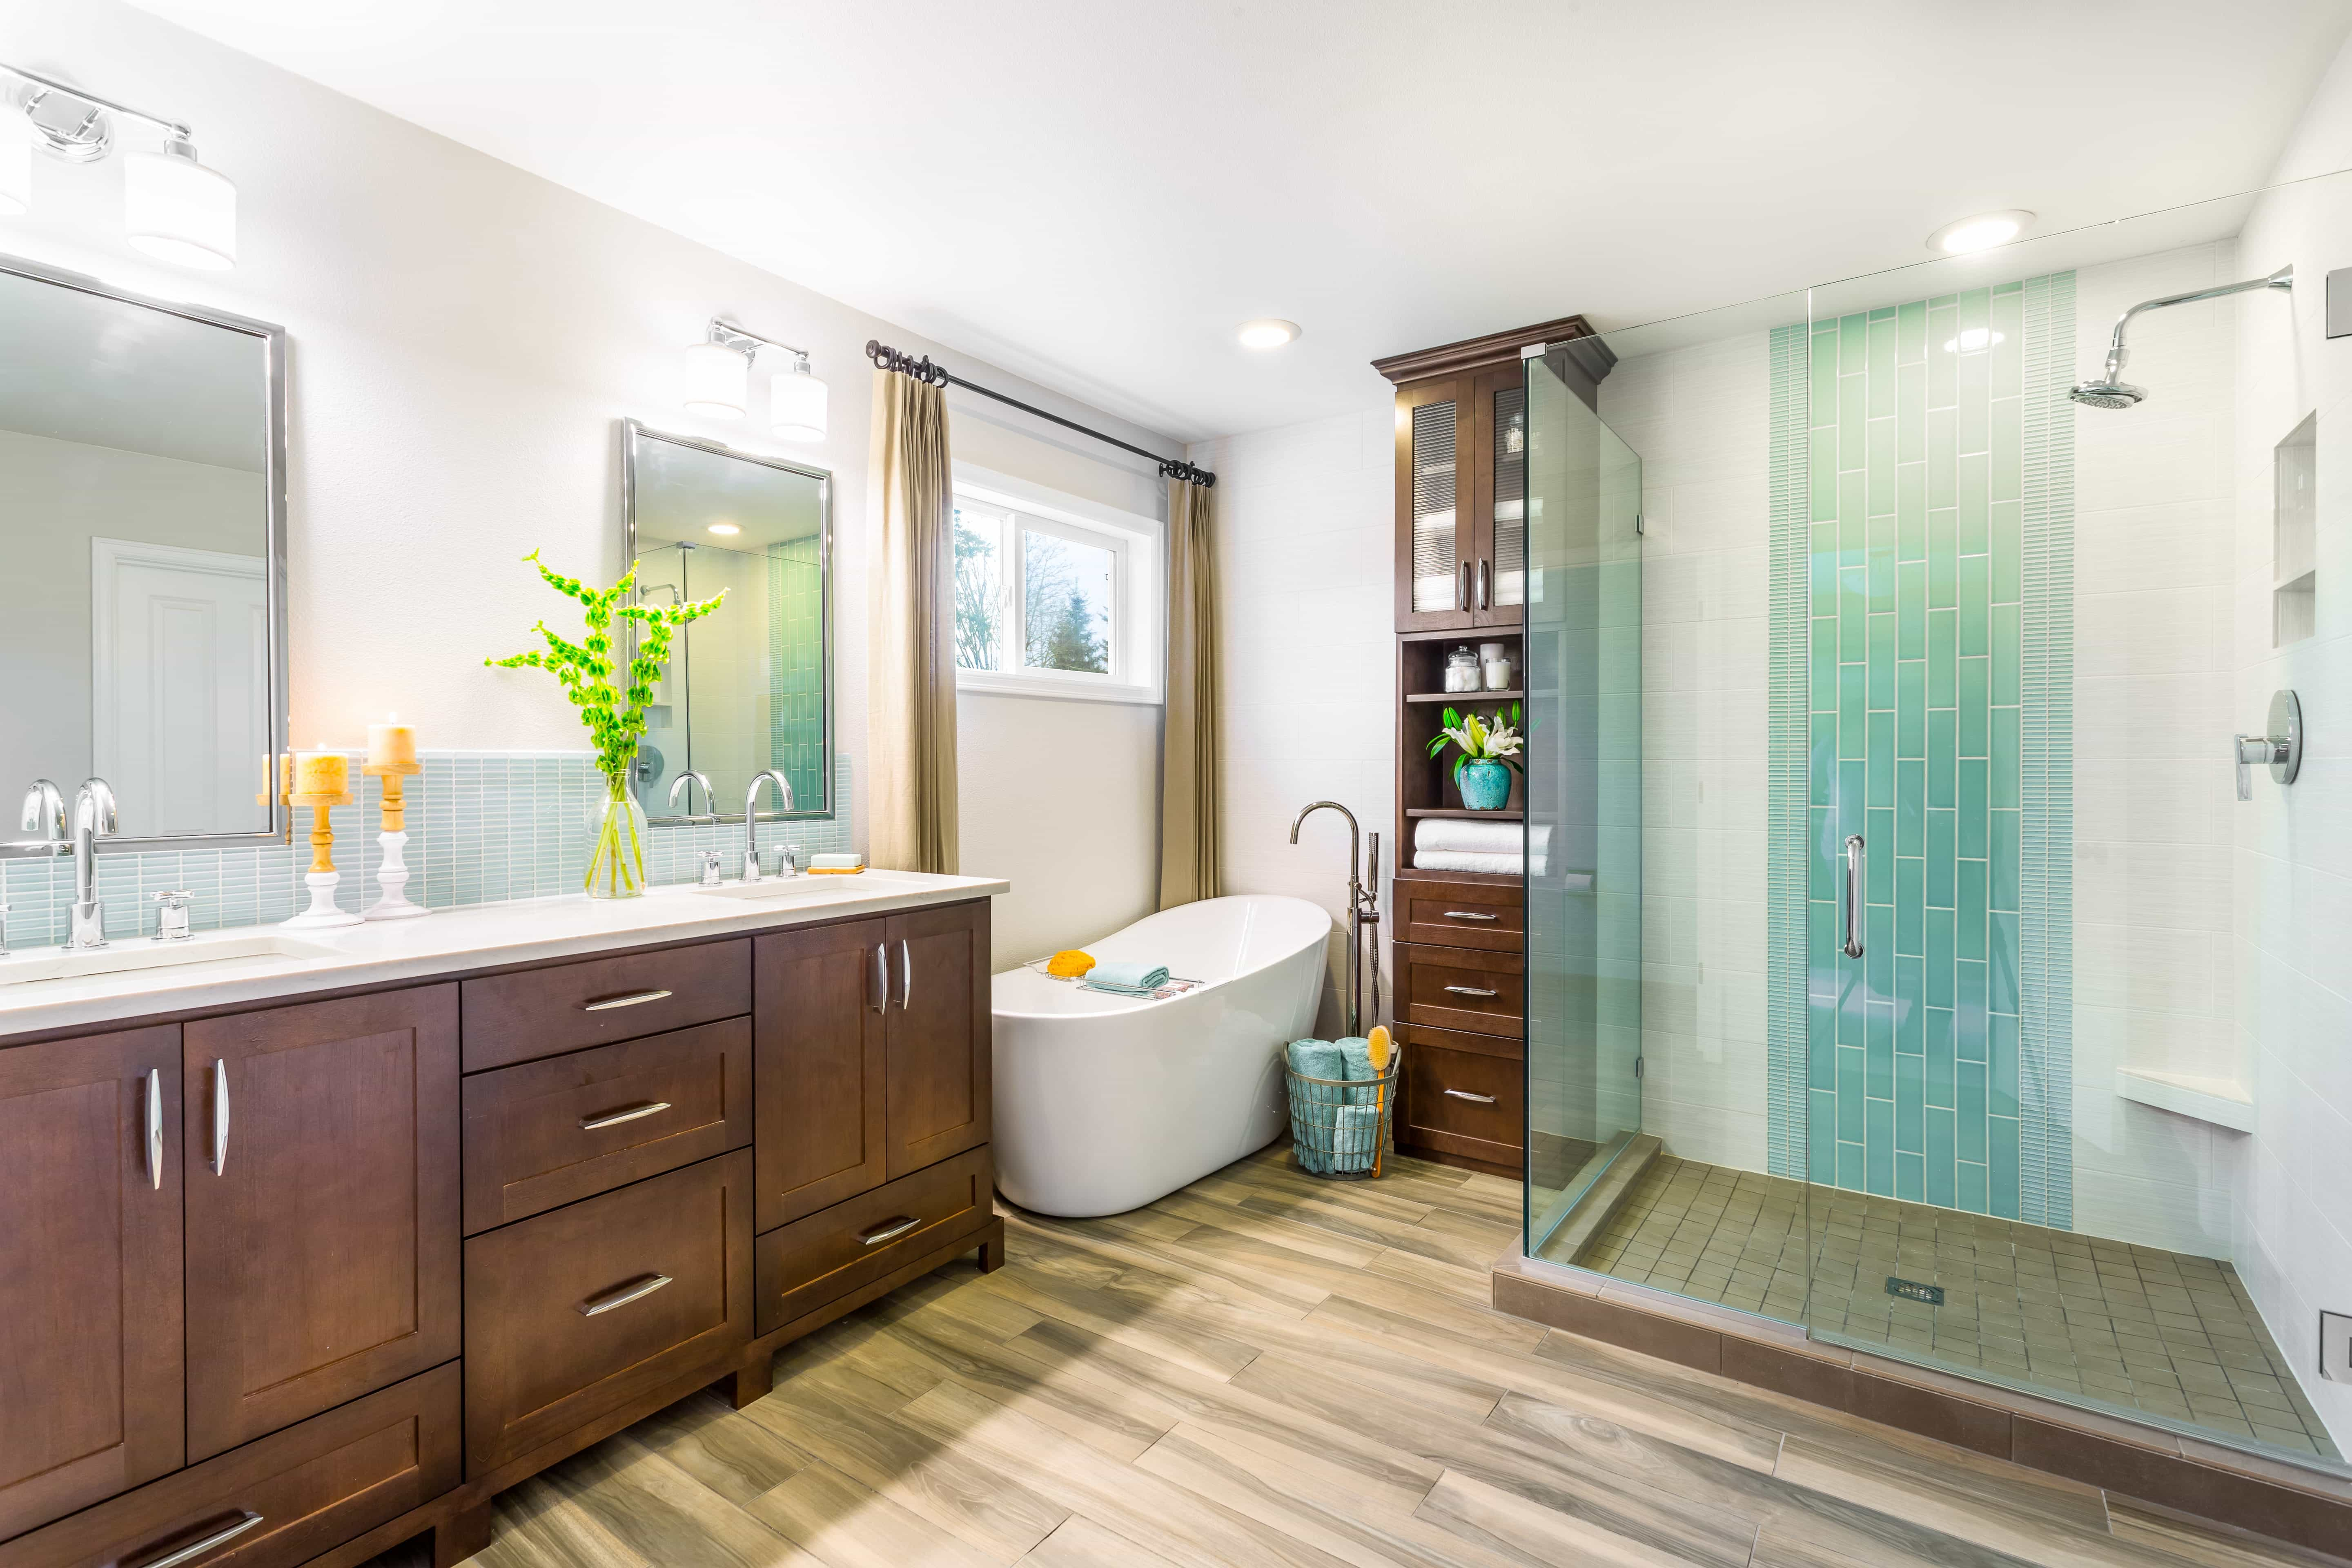 Spa Like Master Bathroom Boasts Glass Enclosed Shower Combo (View 14 of 16)